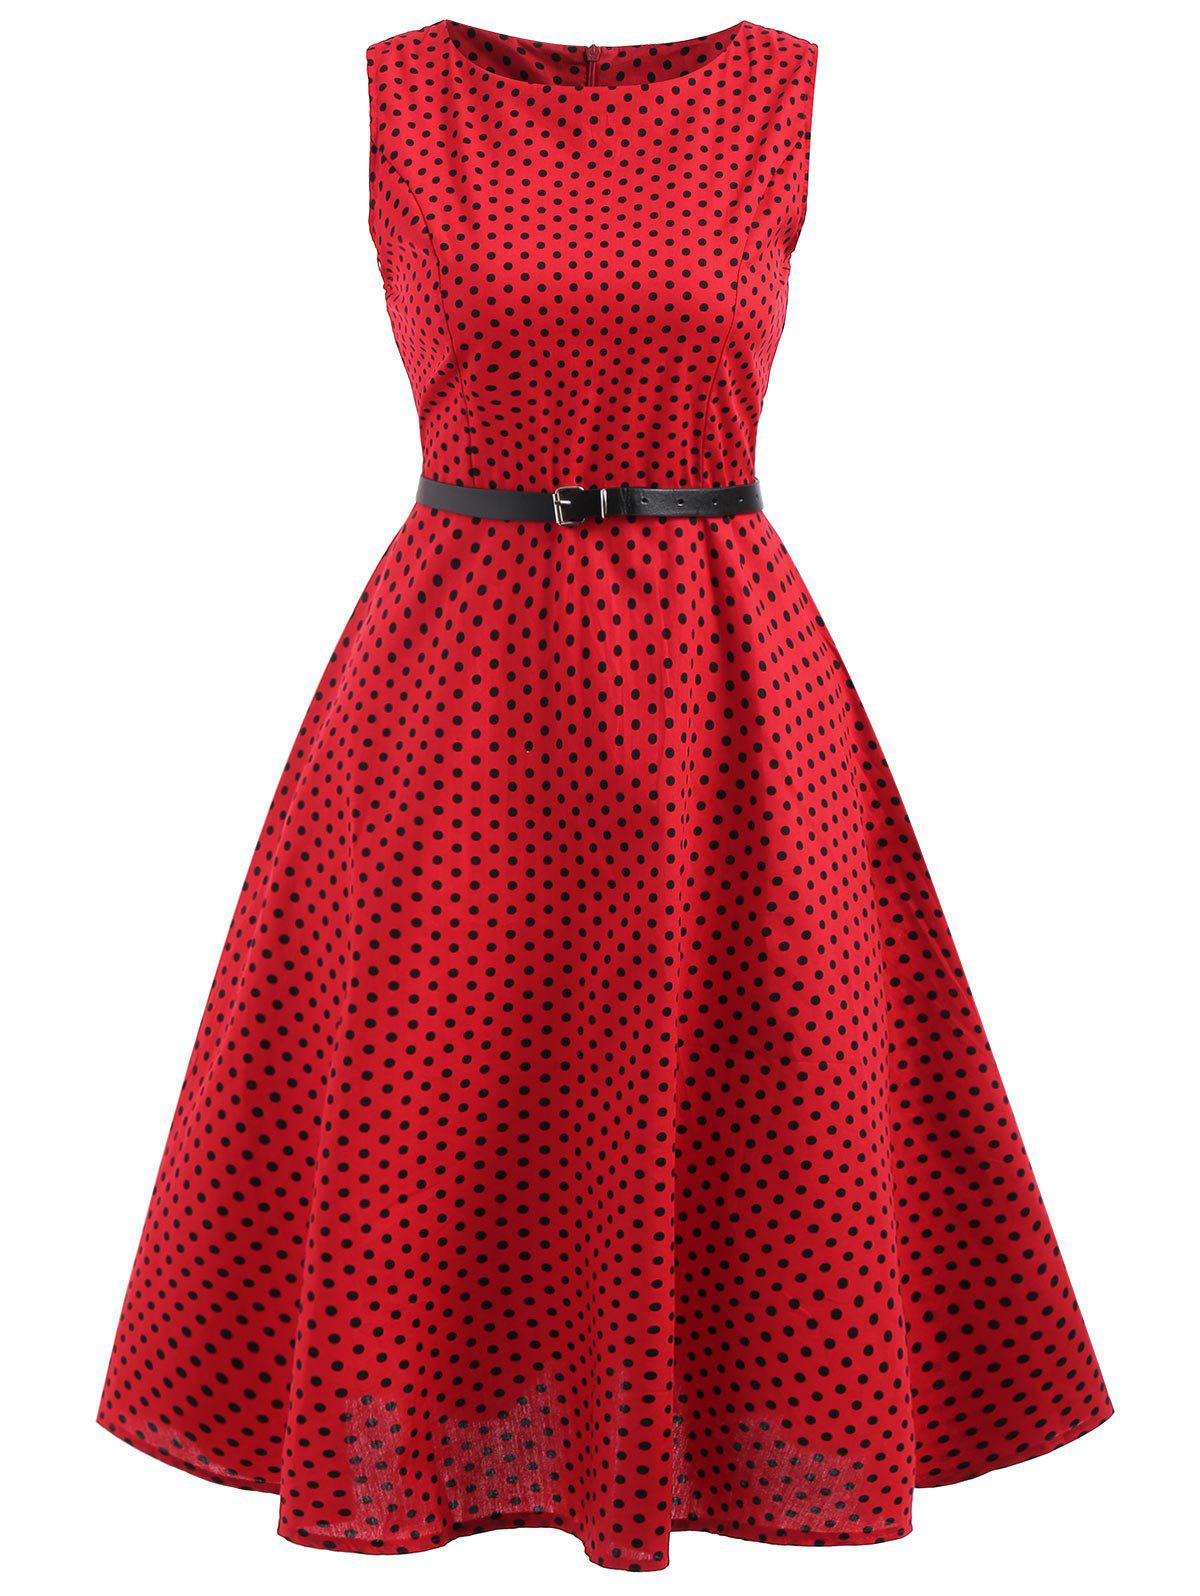 Latest Polka Dot Ball Gwon Dress